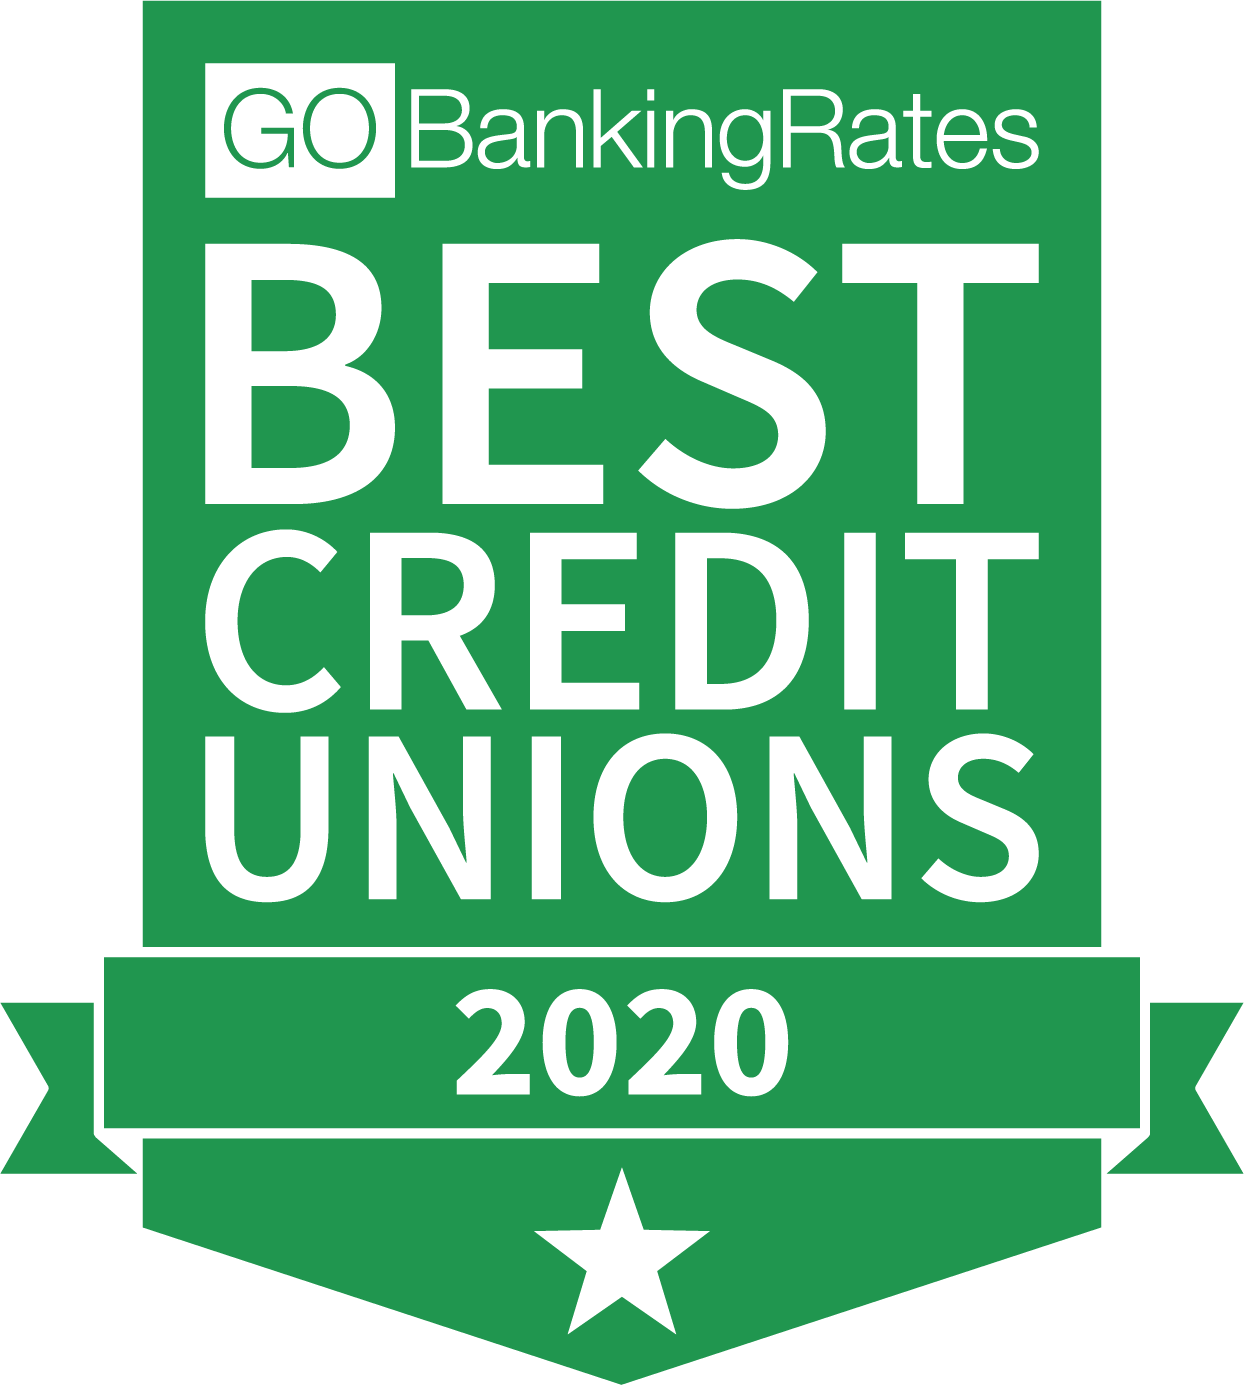 Best Credit Union of 2020 by GOBankingRates